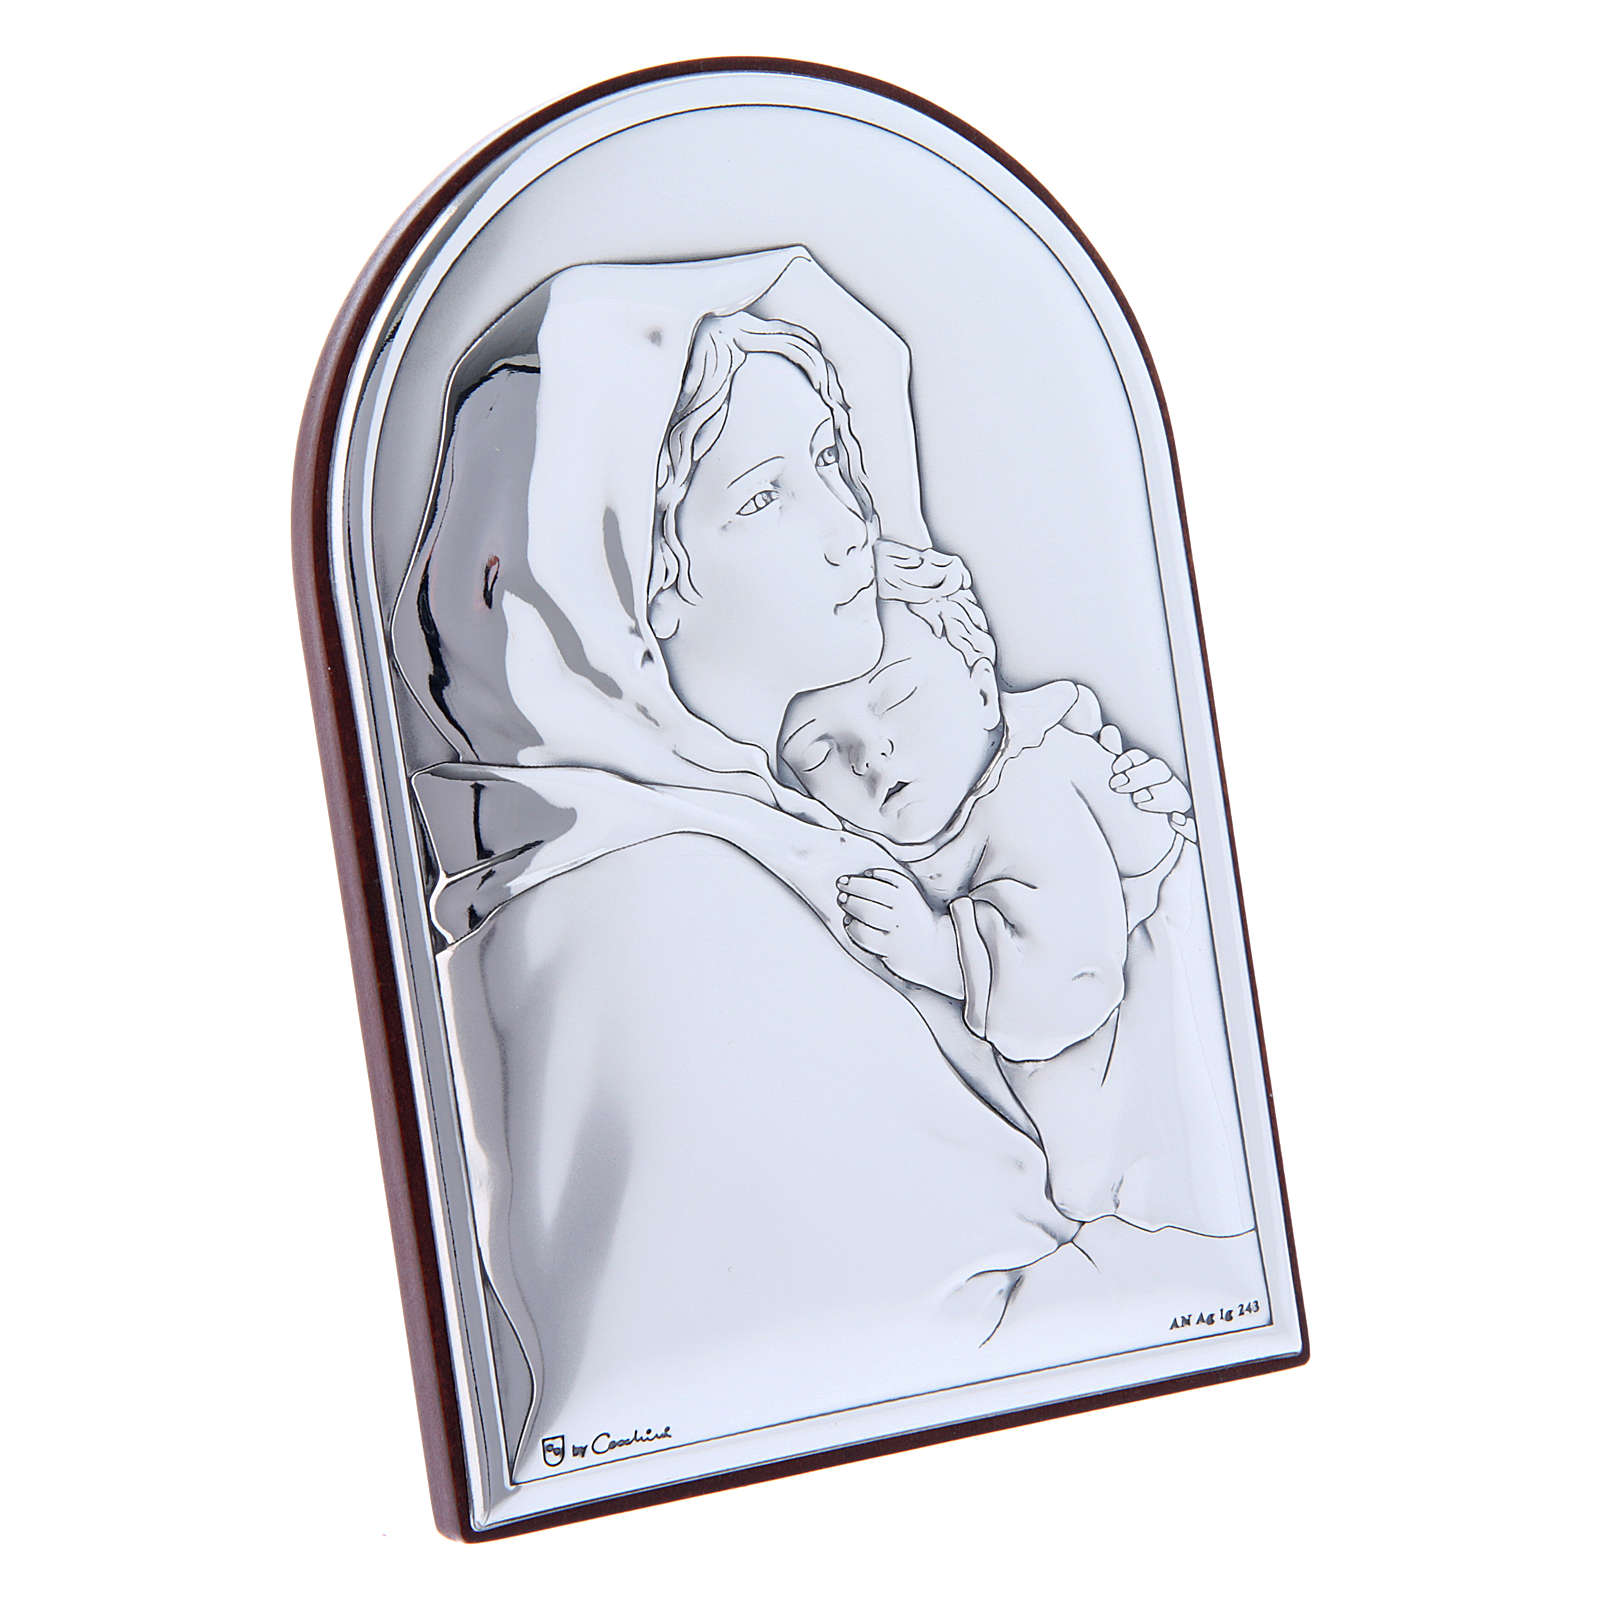 Our Lady and Baby Jesus hug painting in laminboard with refined wooden back 12x8 cm 4